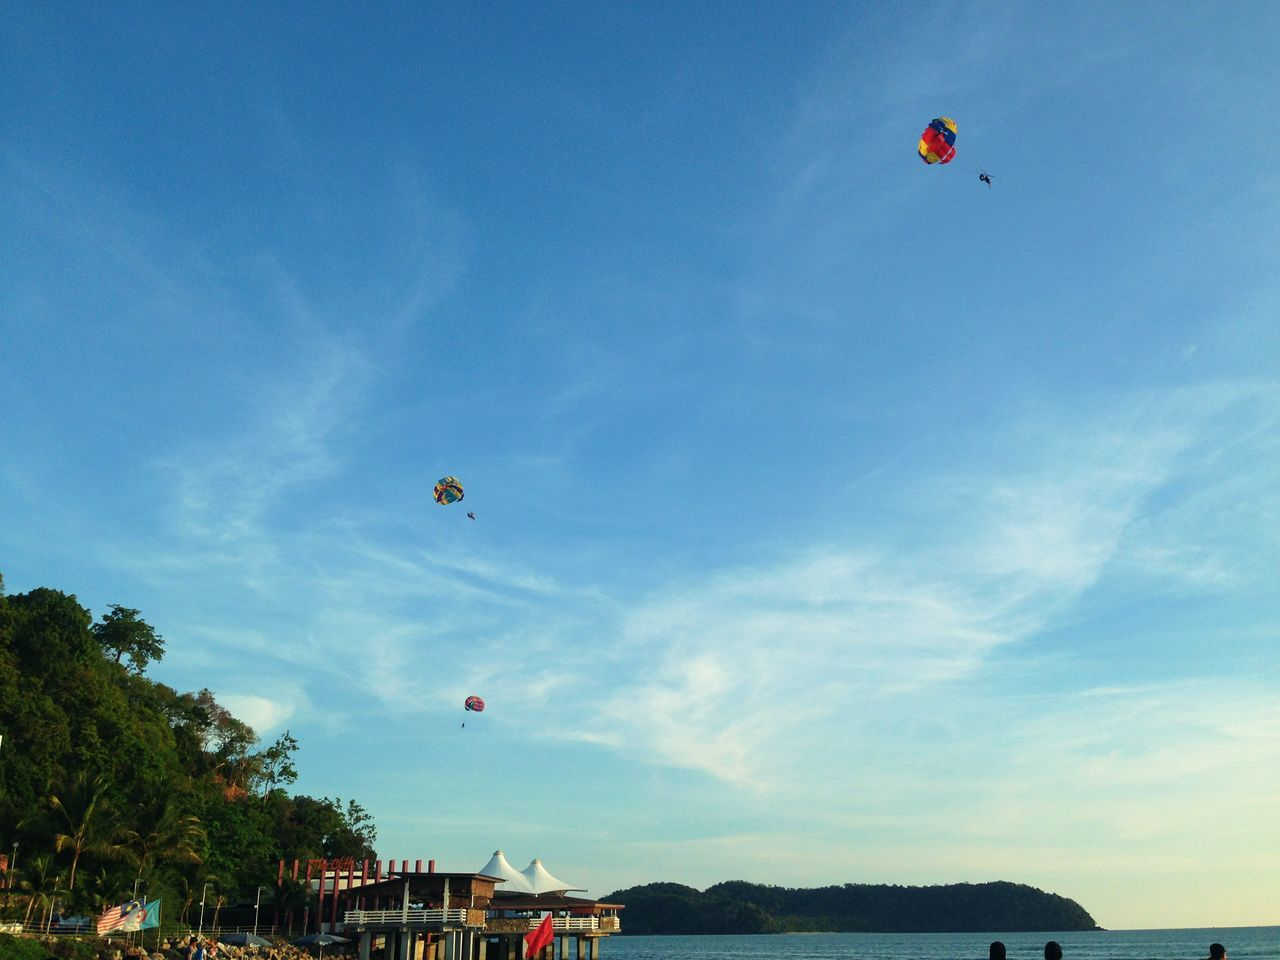 mid-air, adventure, parachute, flying, freedom, parasailing, sky, leisure activity, extreme sports, beach, outdoors, nature, paragliding, blue, low angle view, day, vacations, real people, lifestyles, sport, hot air balloon, tree, one person, people